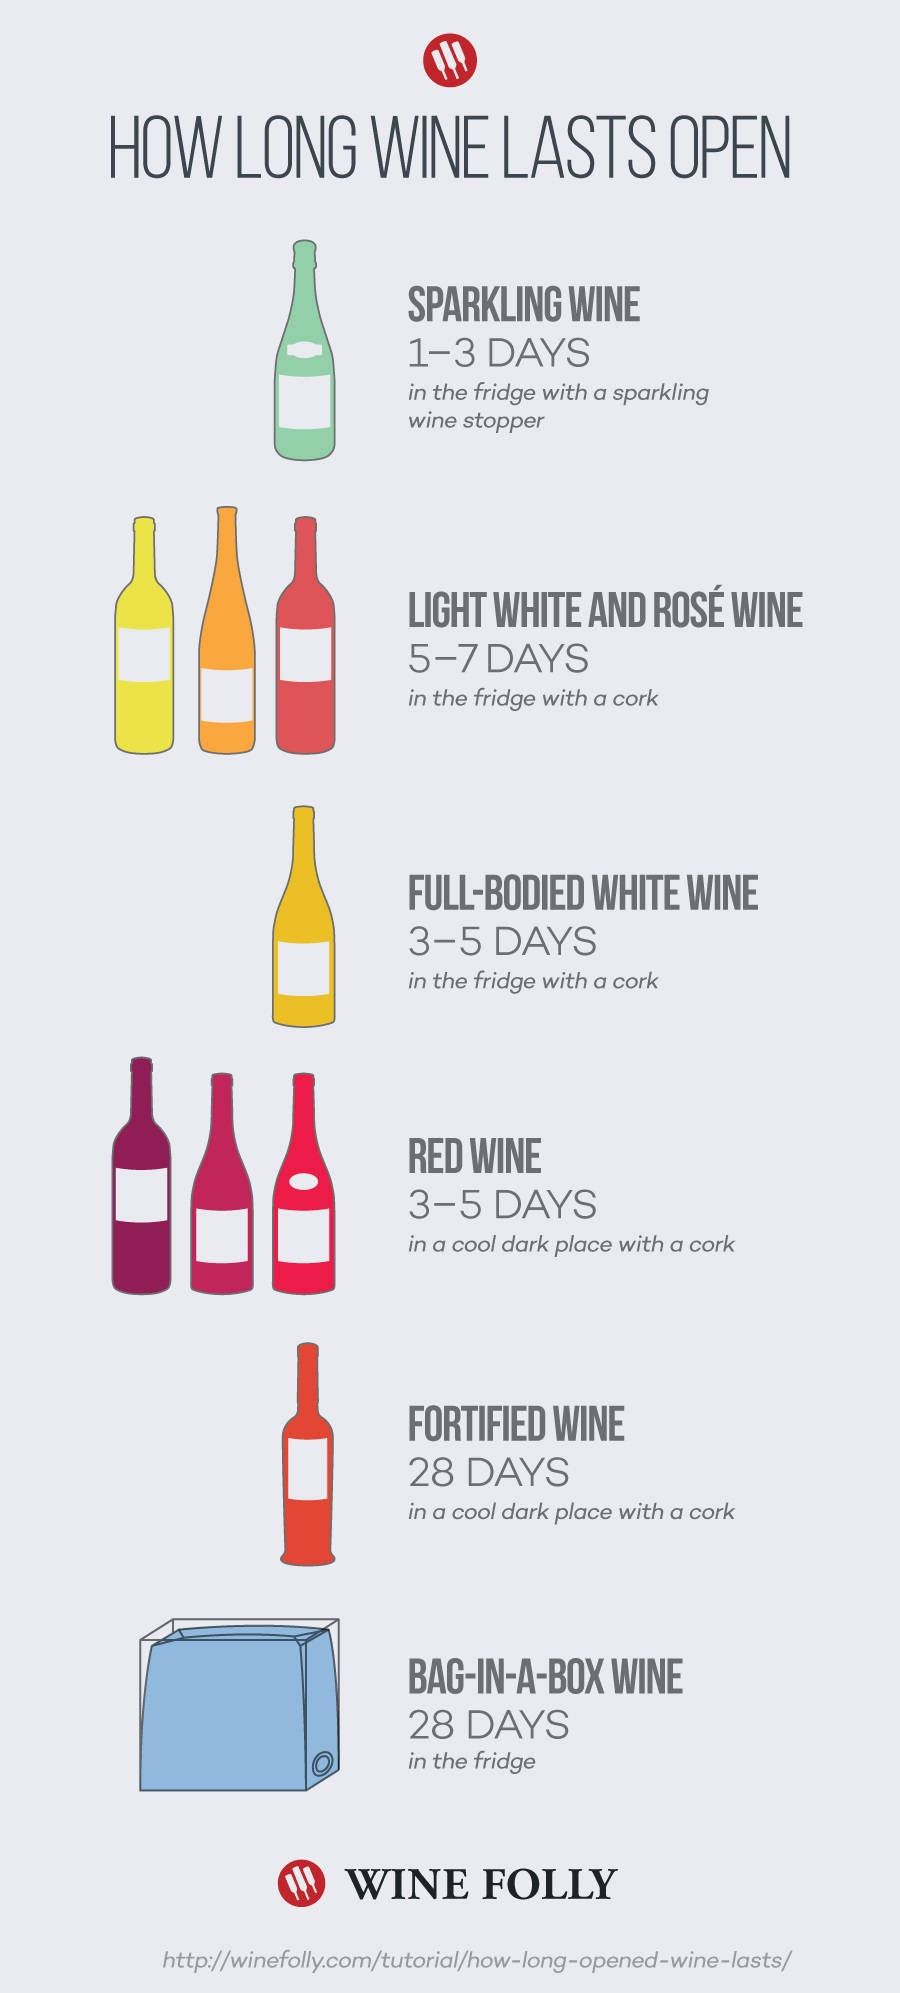 How Long Does Wine Last Opened Fortified Wines Will Last Open For Up To A Month But Most Will Only Last Between 35 Days Her Wine Drinks Wine Folly Wine Facts